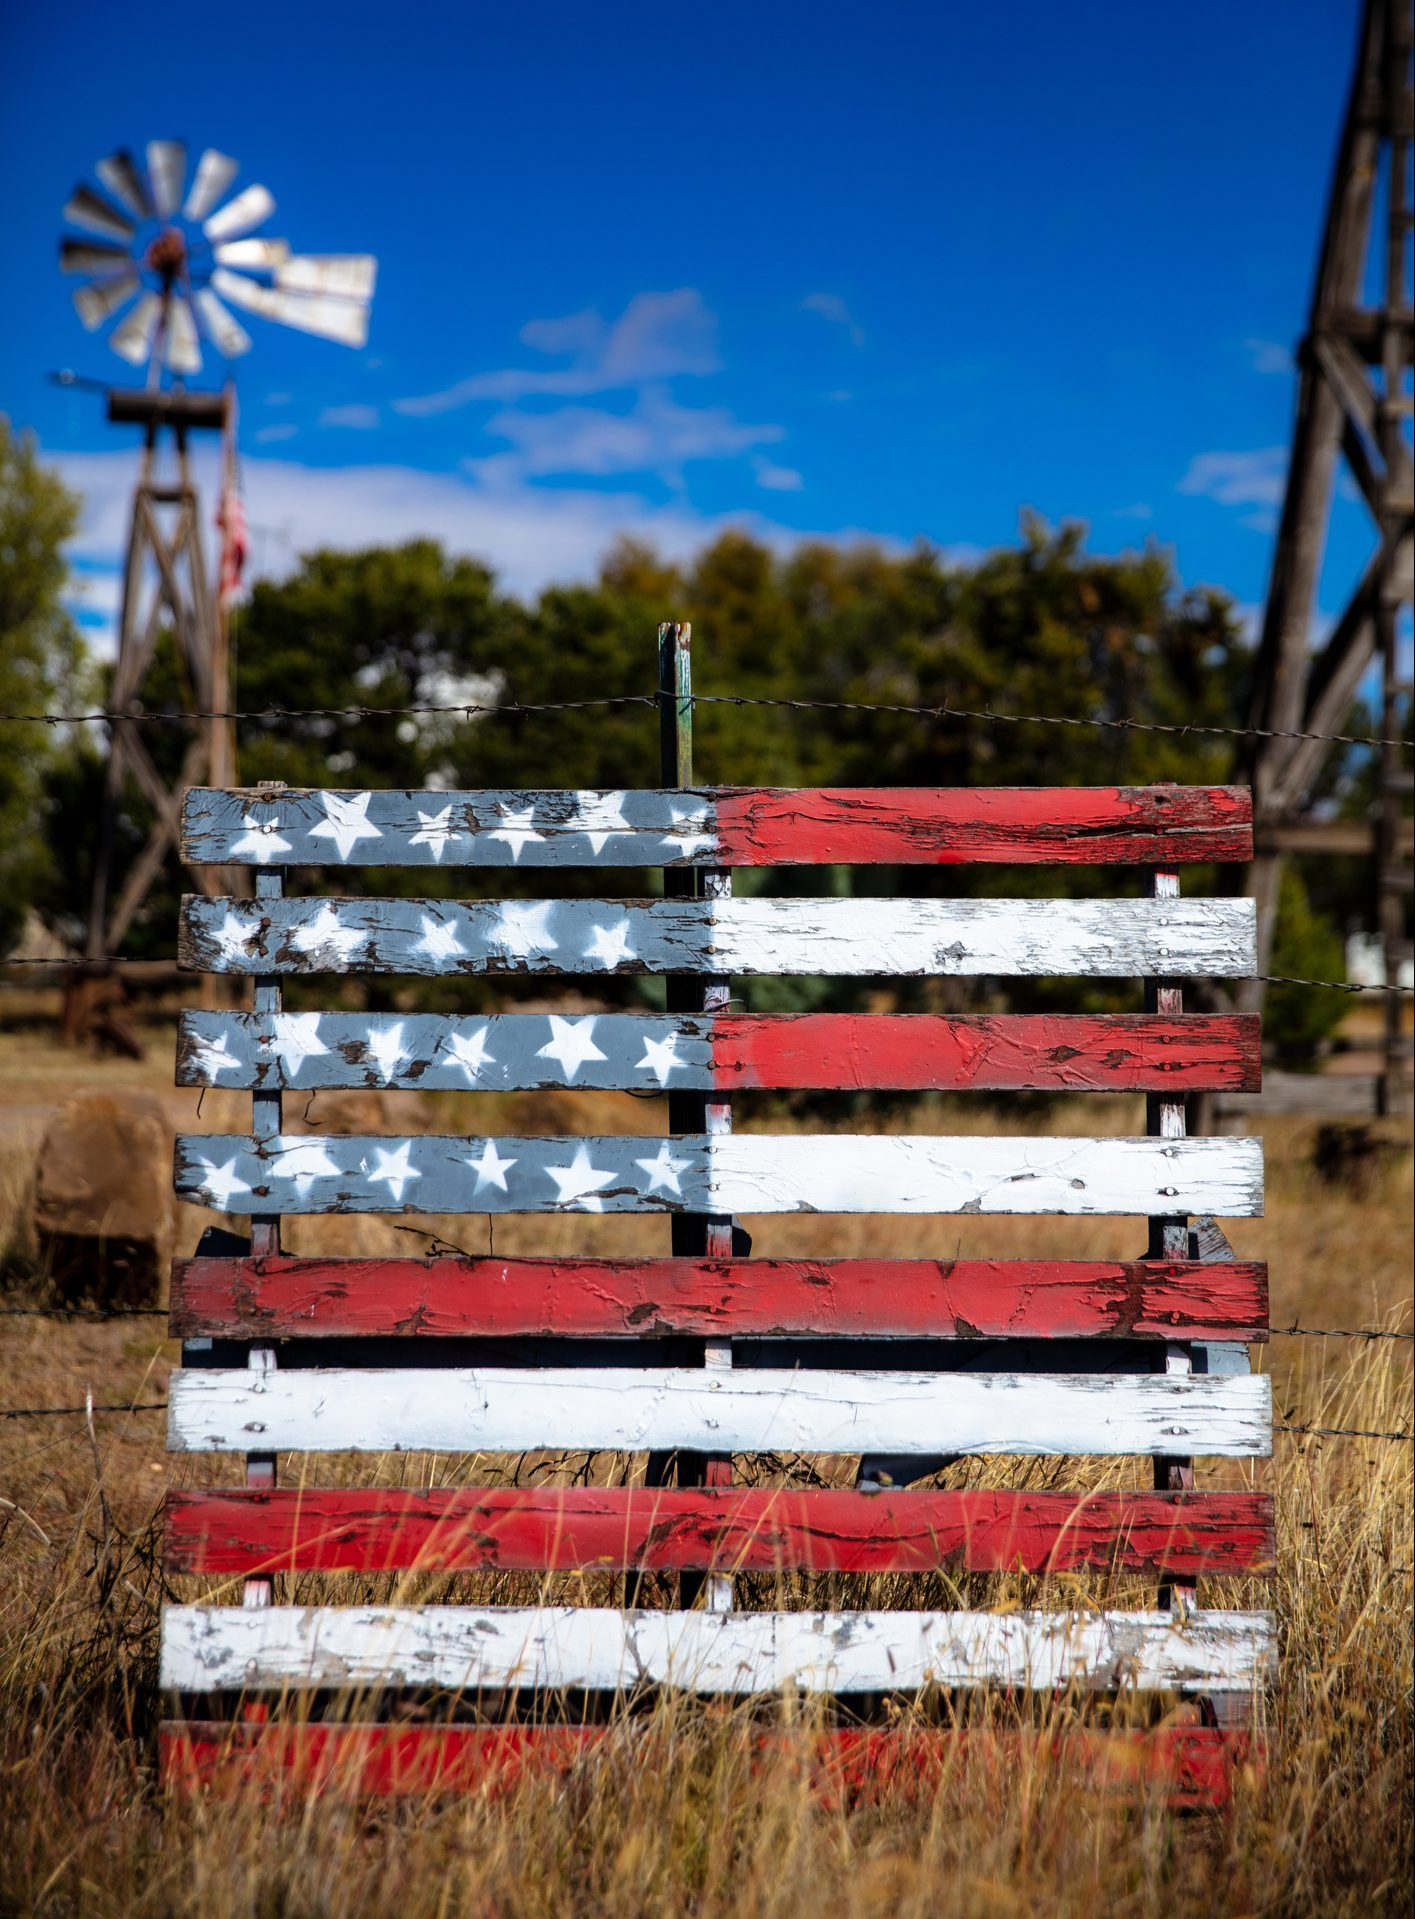 An old fashioned windpump against a bright blue sky behind a wooden pallet painted with the stars and stripes of the american flag